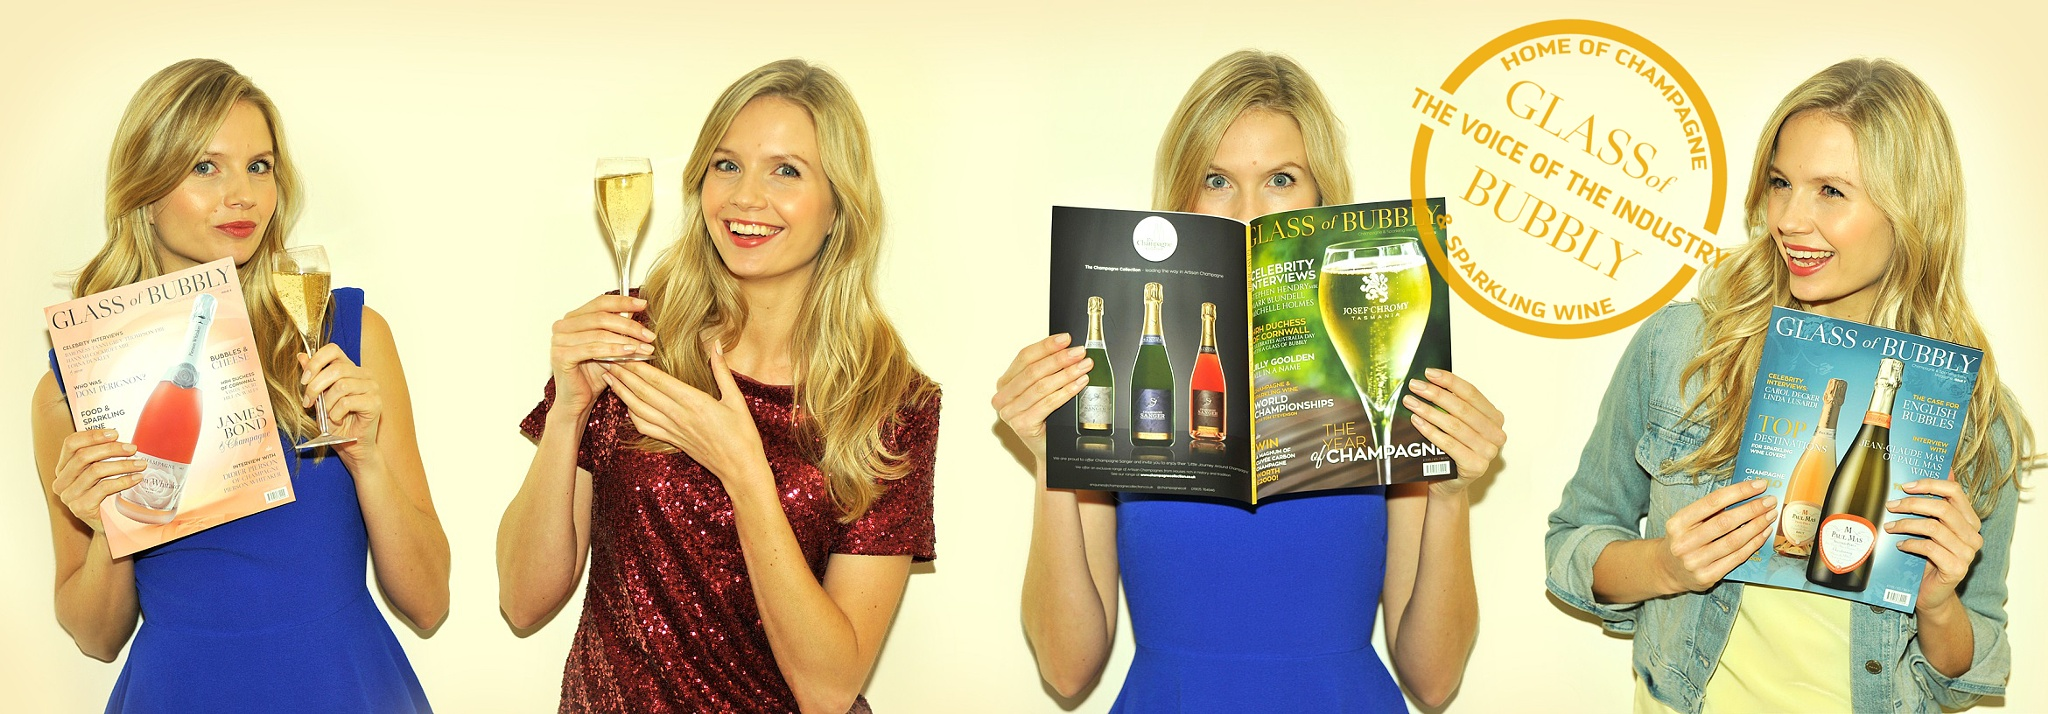 Glass of Bubbly Magazine by GlassofBubbly